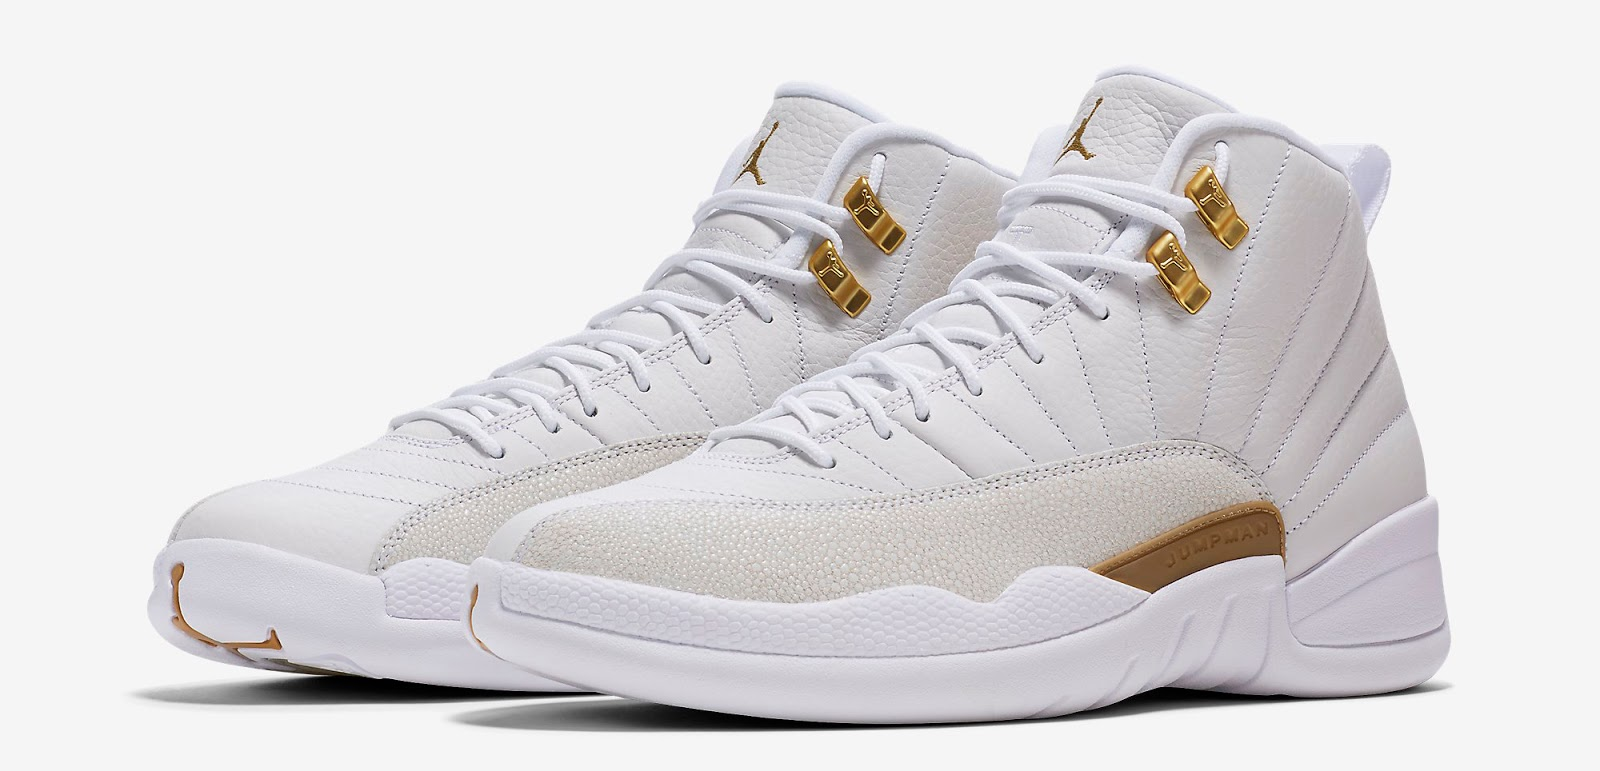 eb51b620dab7 ajordanxi Your  1 Source For Sneaker Release Dates  Air Jordan 12 ...